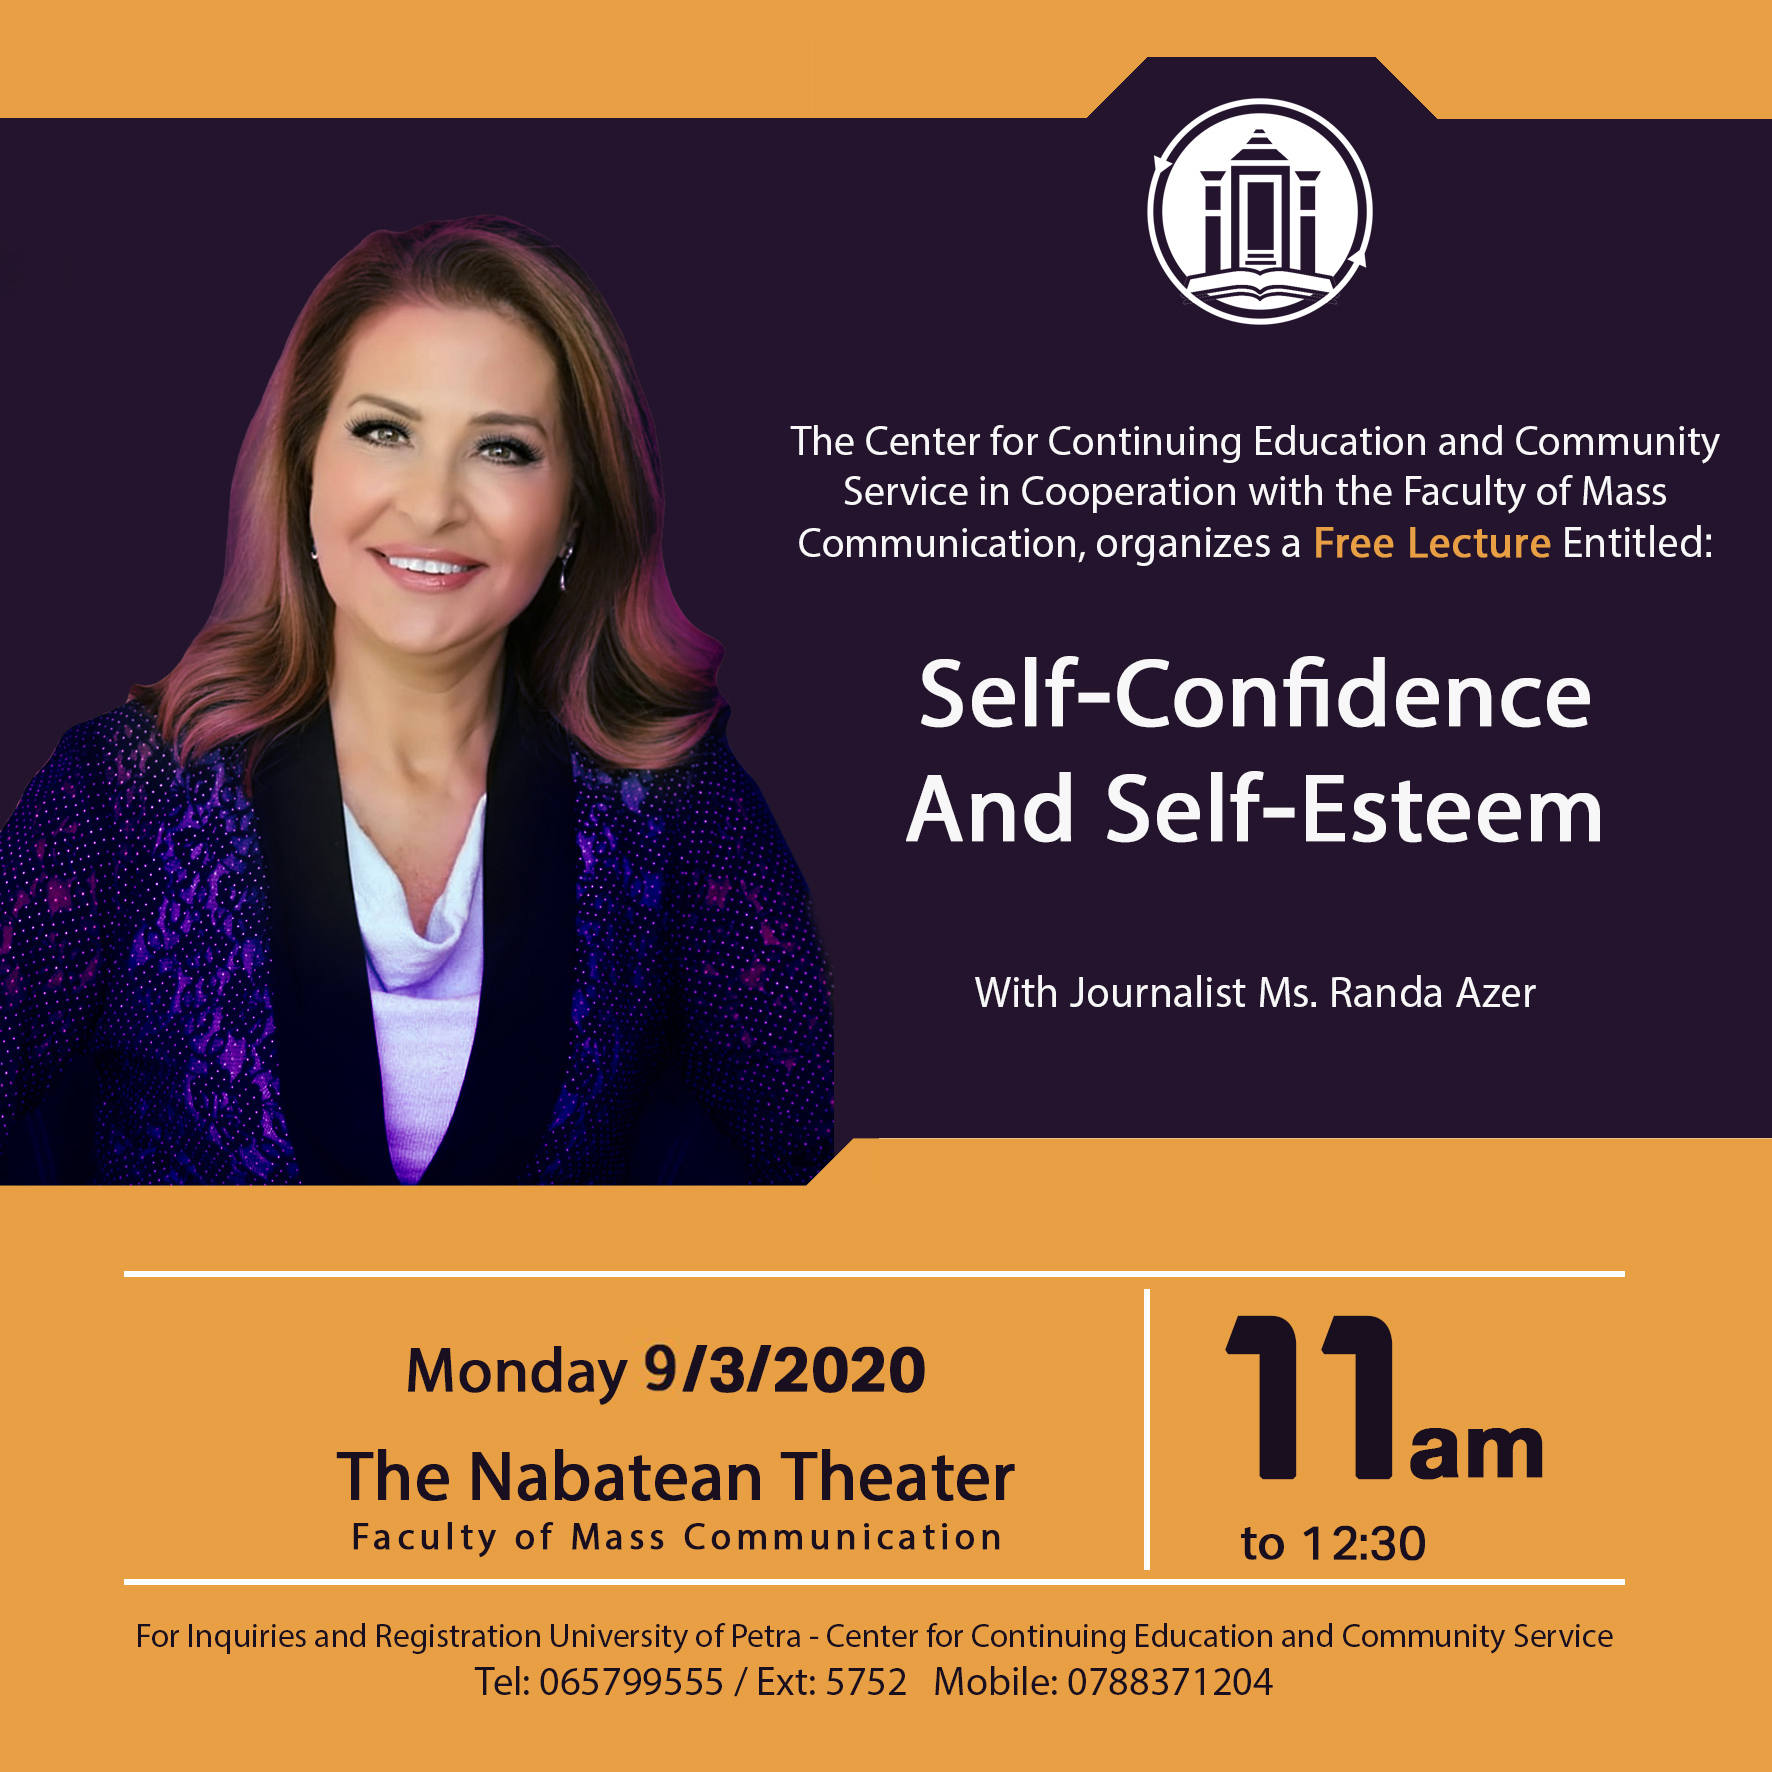 "Free Lecture Entitled: ""Self-Confidence and Self-Esteem"" with Journalist Randa Azer"